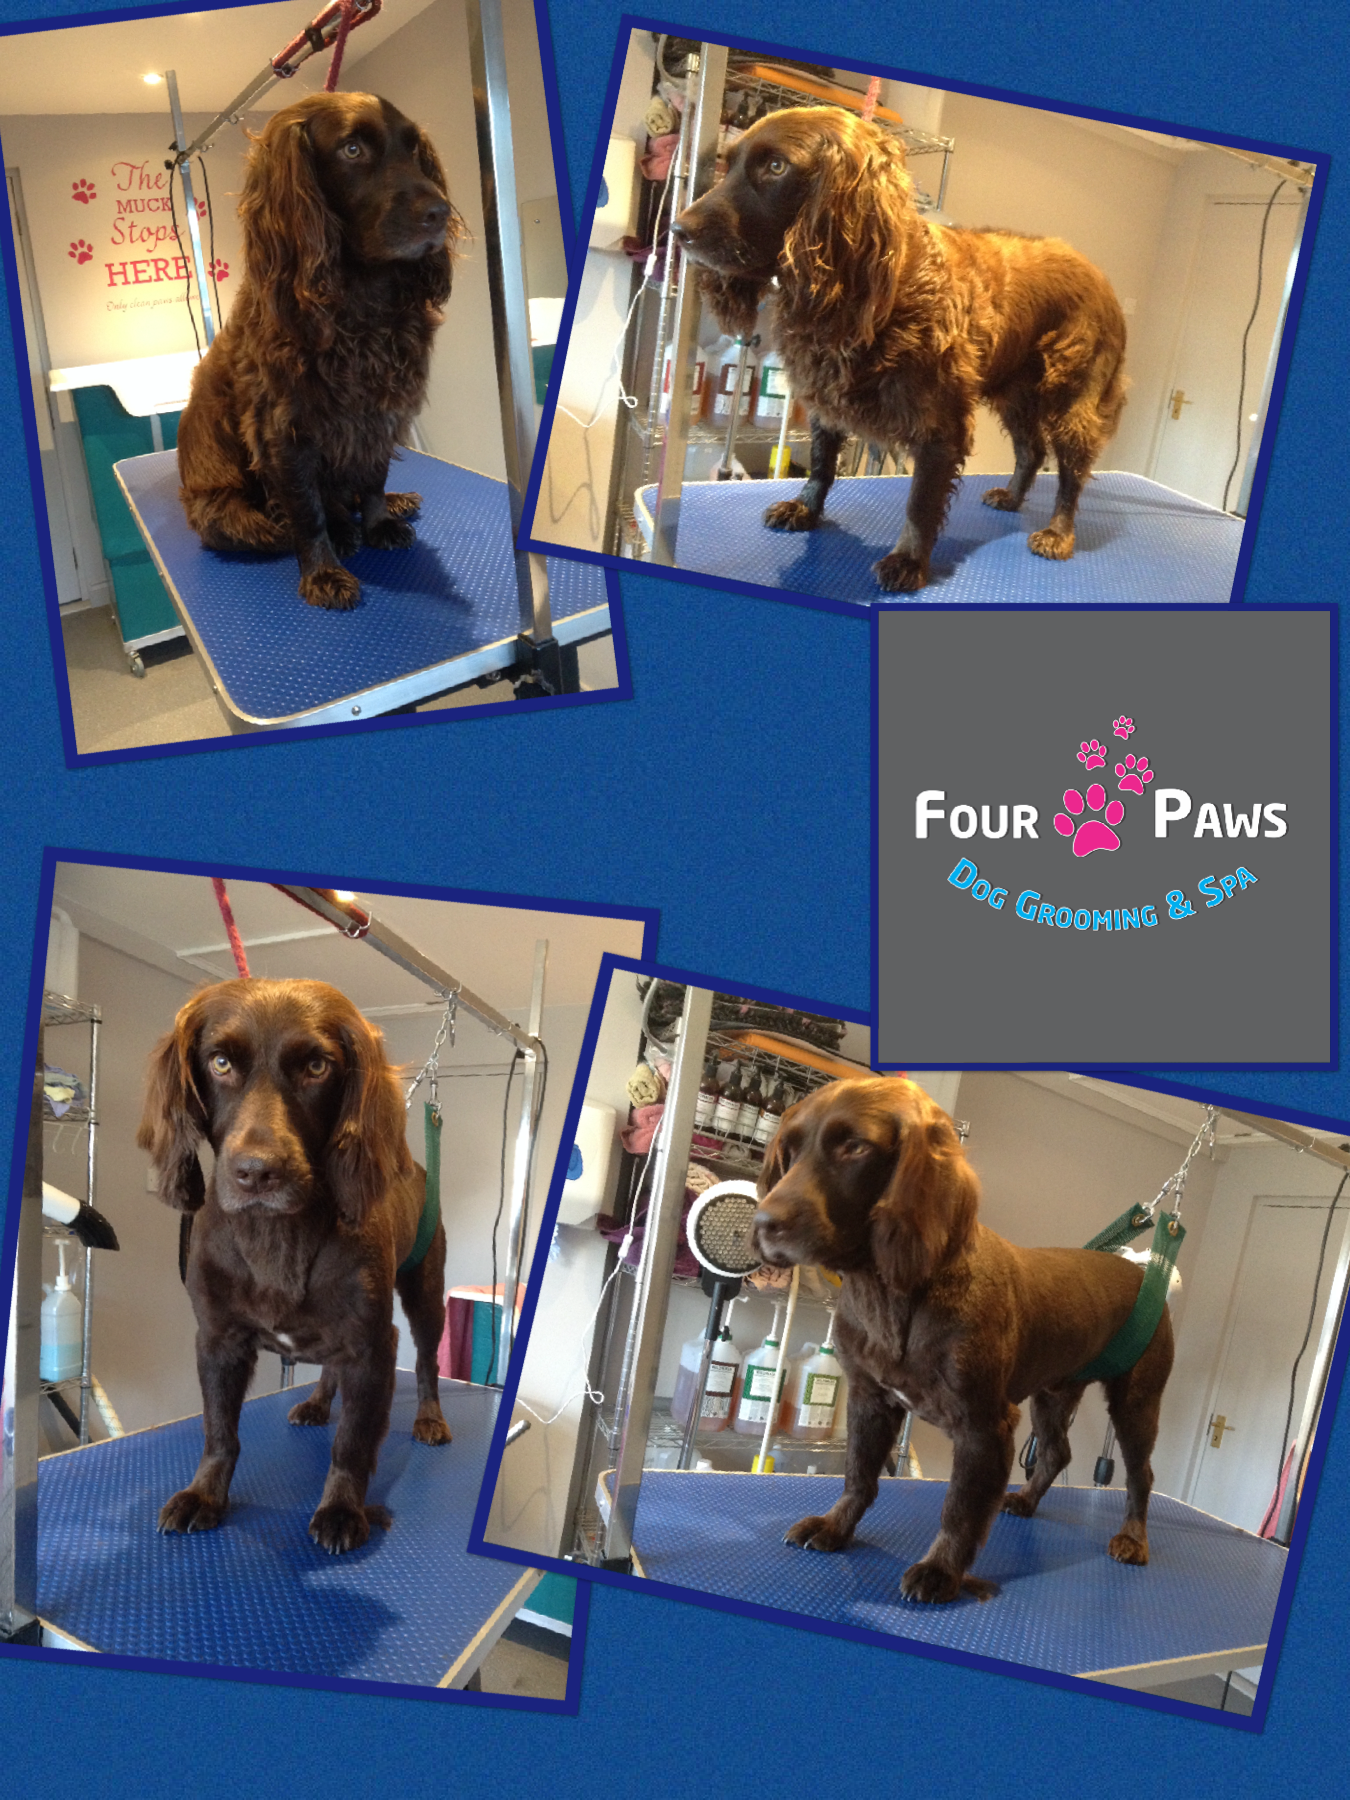 Dog Grooming Amp Spa In Reading Four Paws